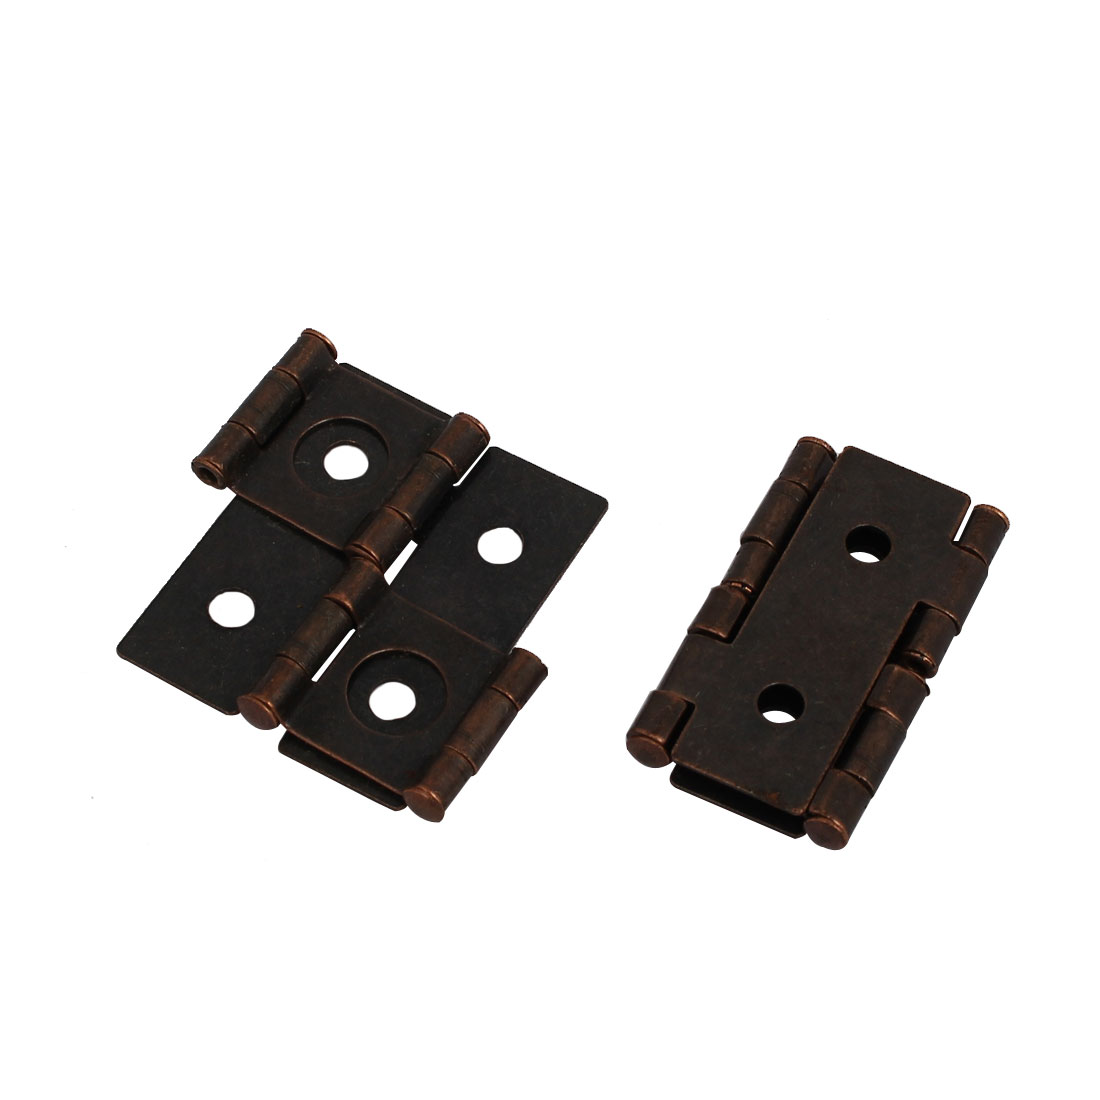 Cabinet Window Wardrobe Door  Metal Screen Hinge Copper Tone 2pcs